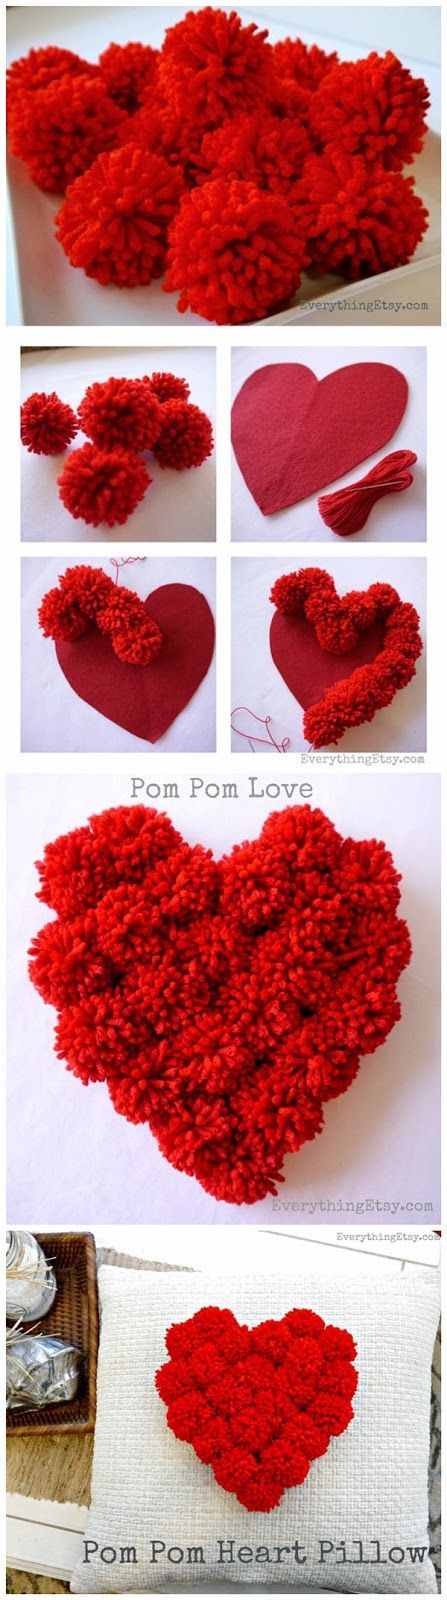 I am in love with pom poms! Pom pom crafts are super fun and you can't help but smile when you're working with them. This Pom Pom Heart Pi...: